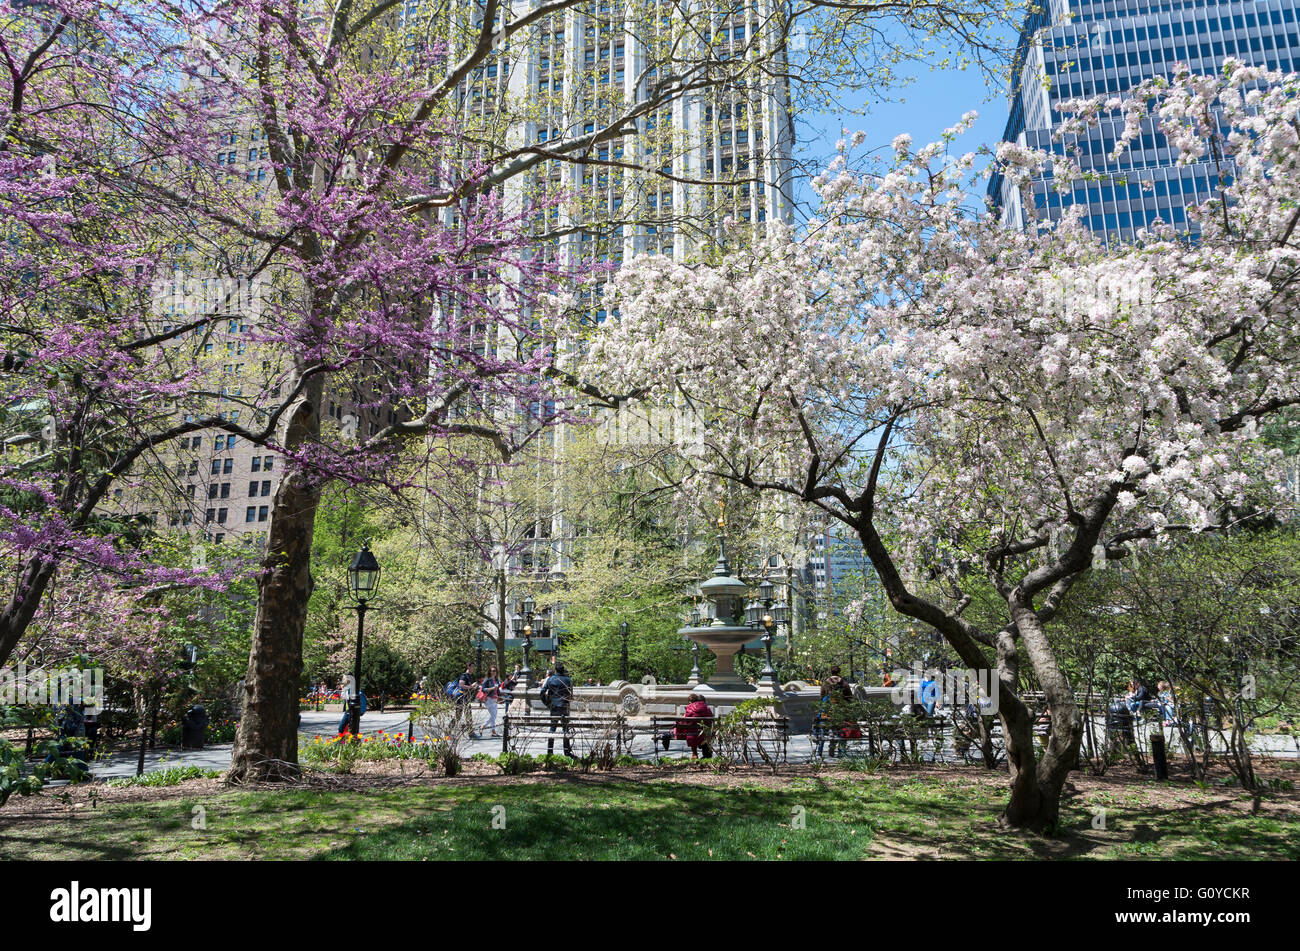 Lawn in City Hall Park, New York, in Spring with tree blossom - Stock Image